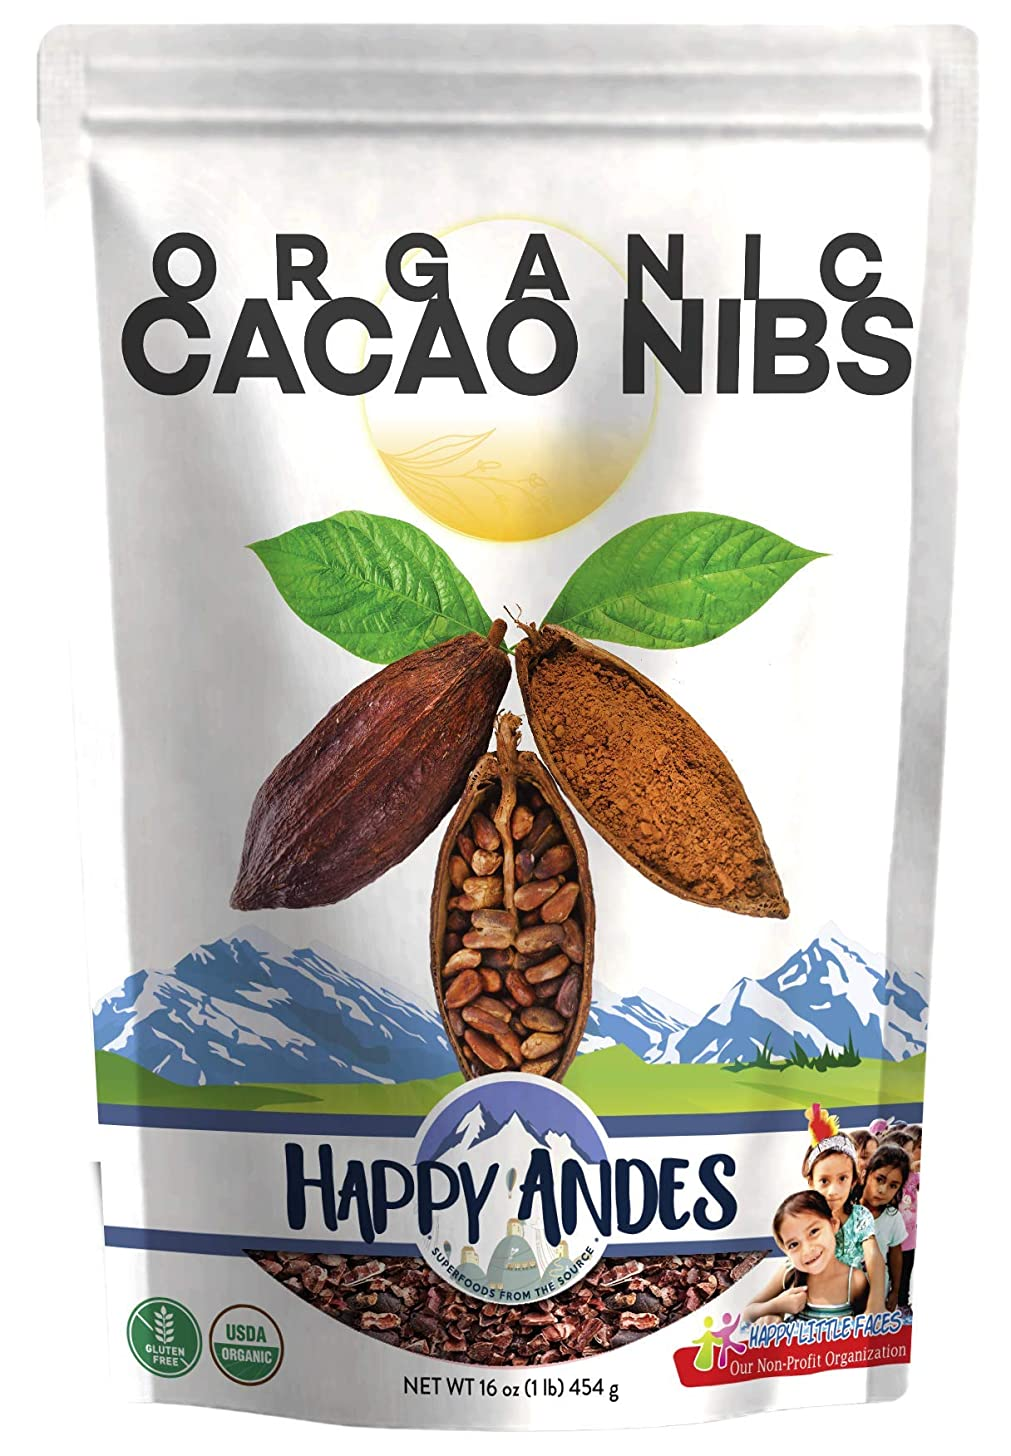 Happy Andes Organic Cacao Nibs, 1 Pound